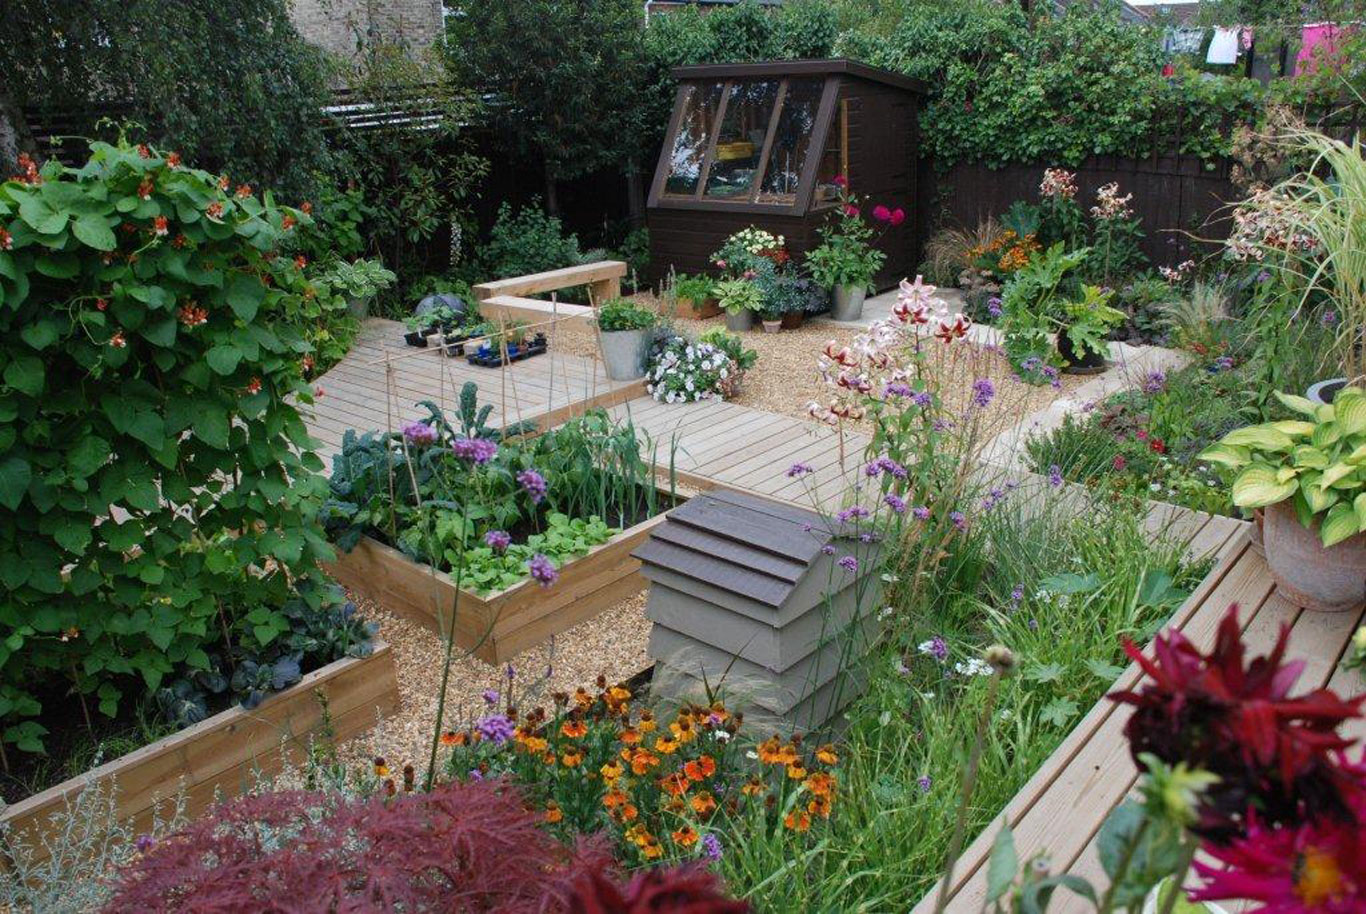 Garden landscapers in essex and london west essex landscapes for In the garden landscape and design